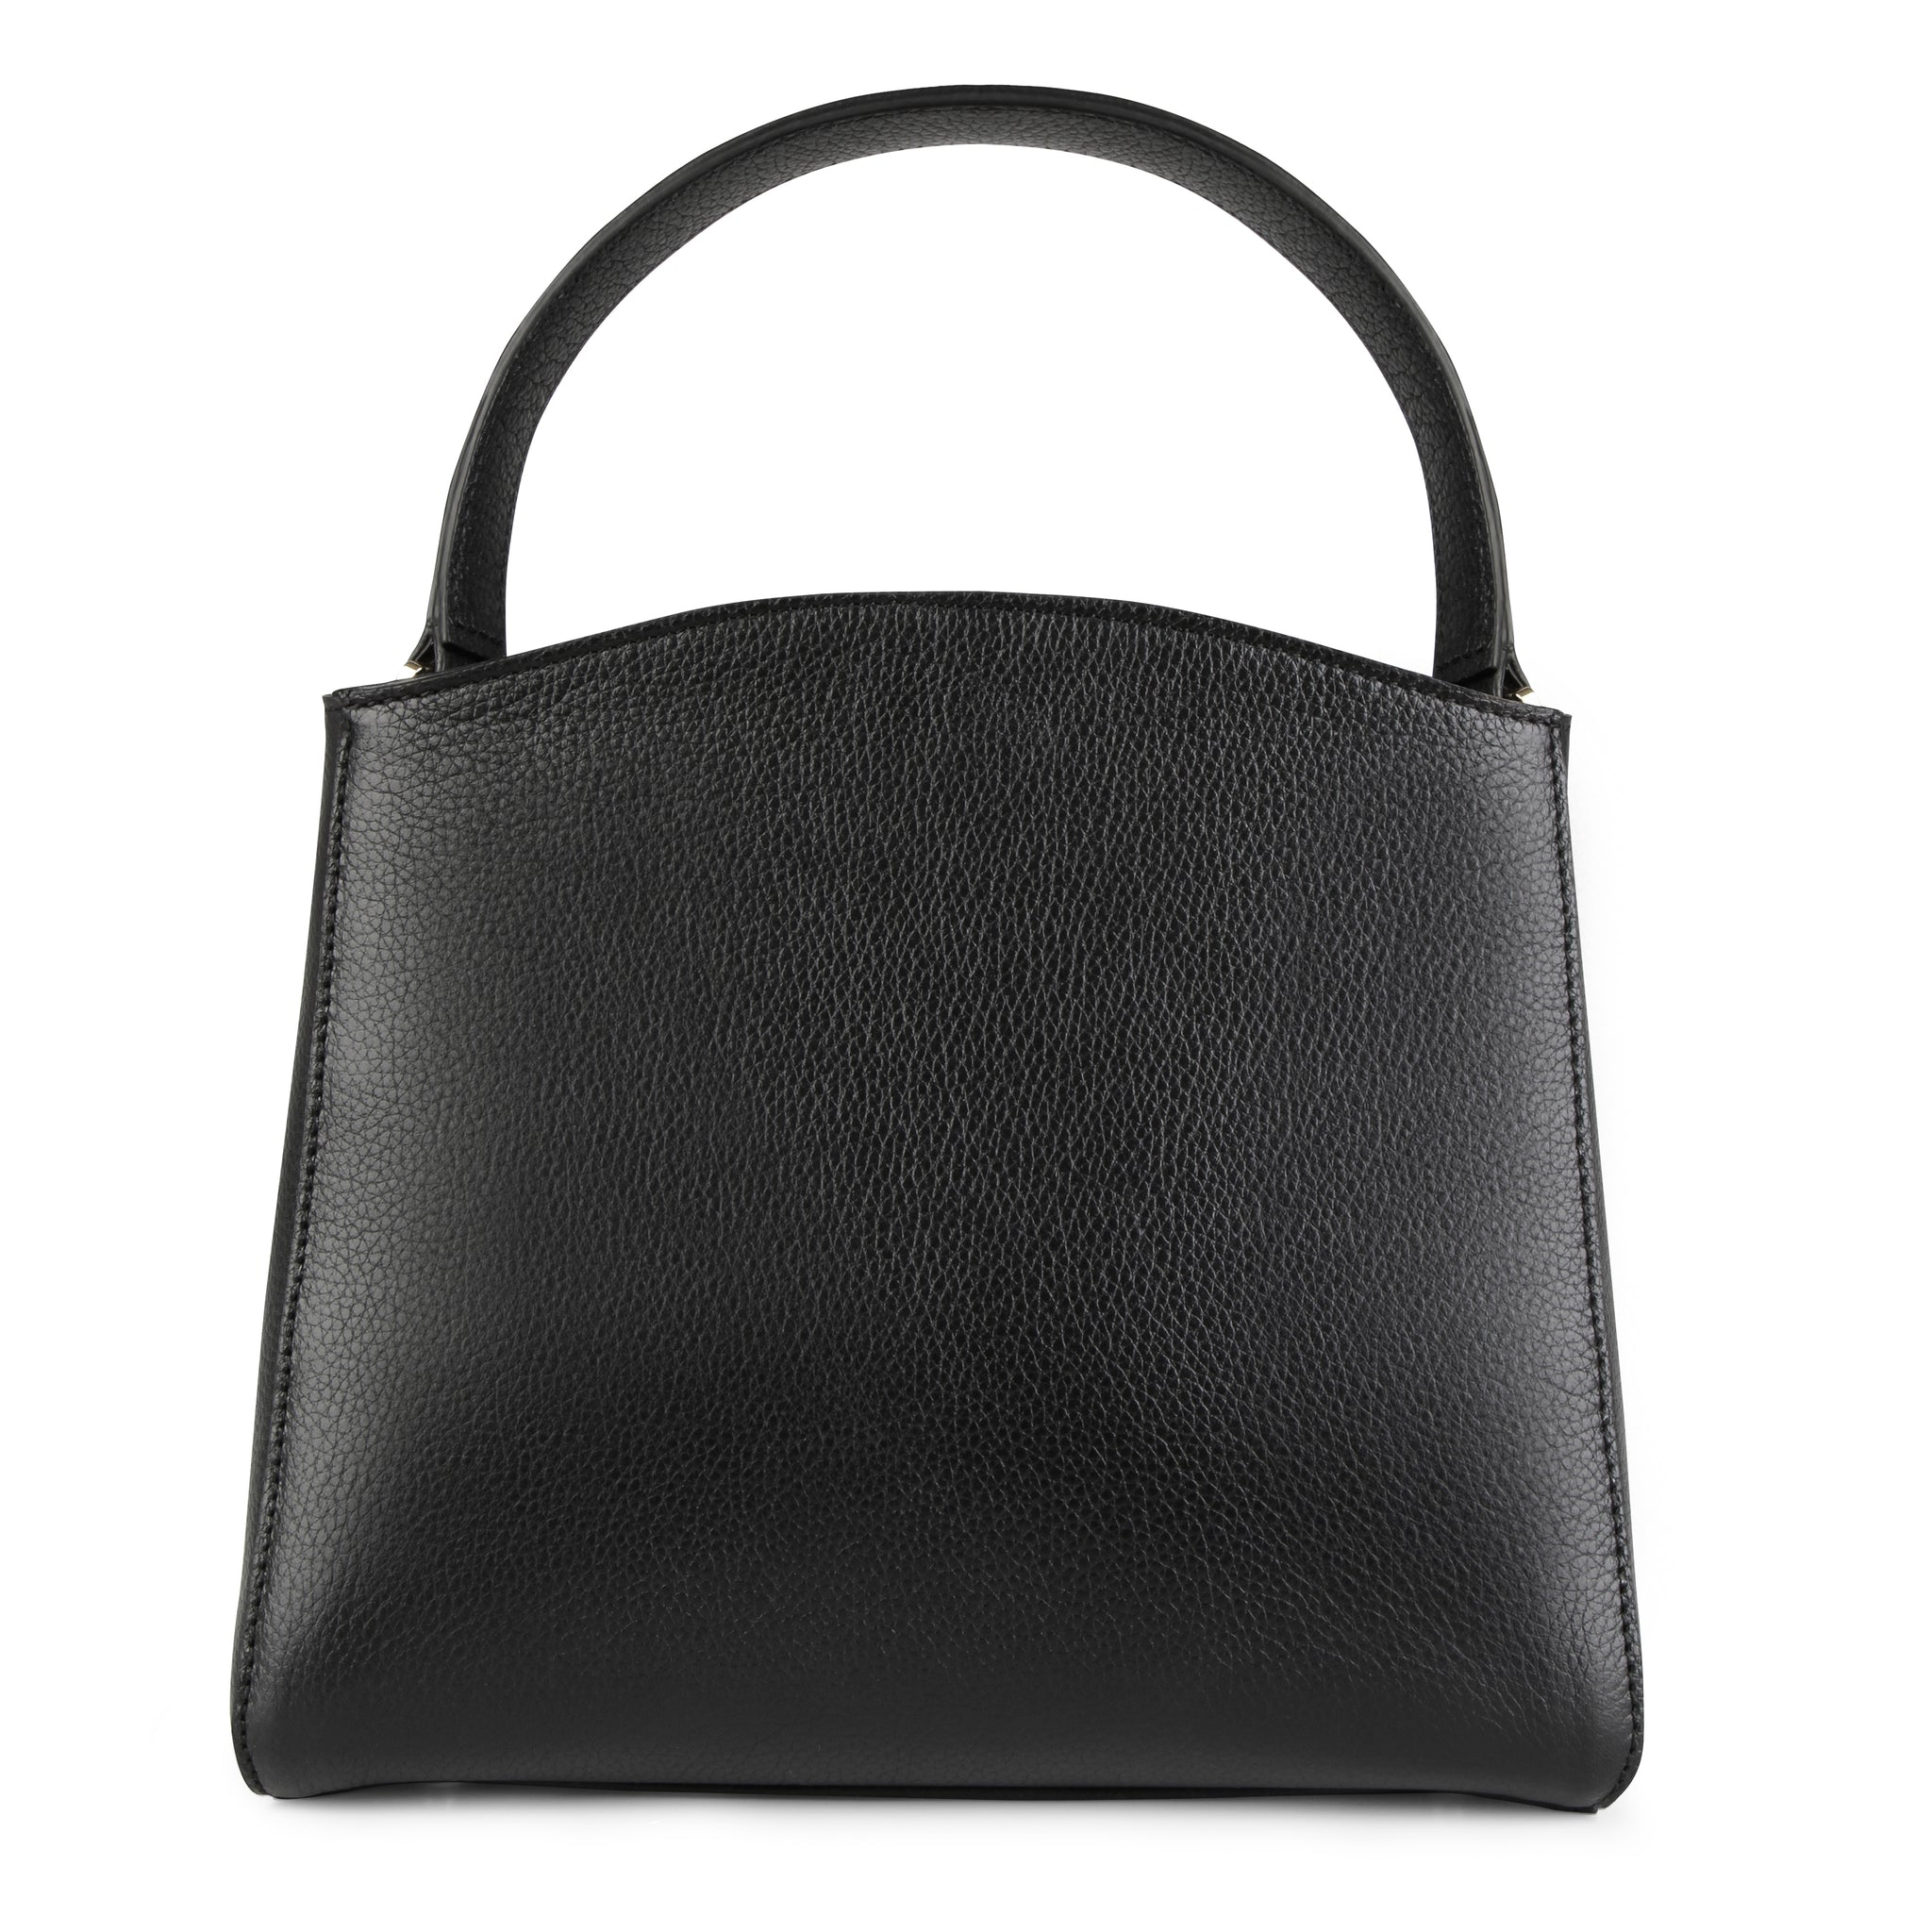 A medium size black convertible leather top handle tote bag with a knot detail in front that could be used as a handheld mini tote bag, back image.